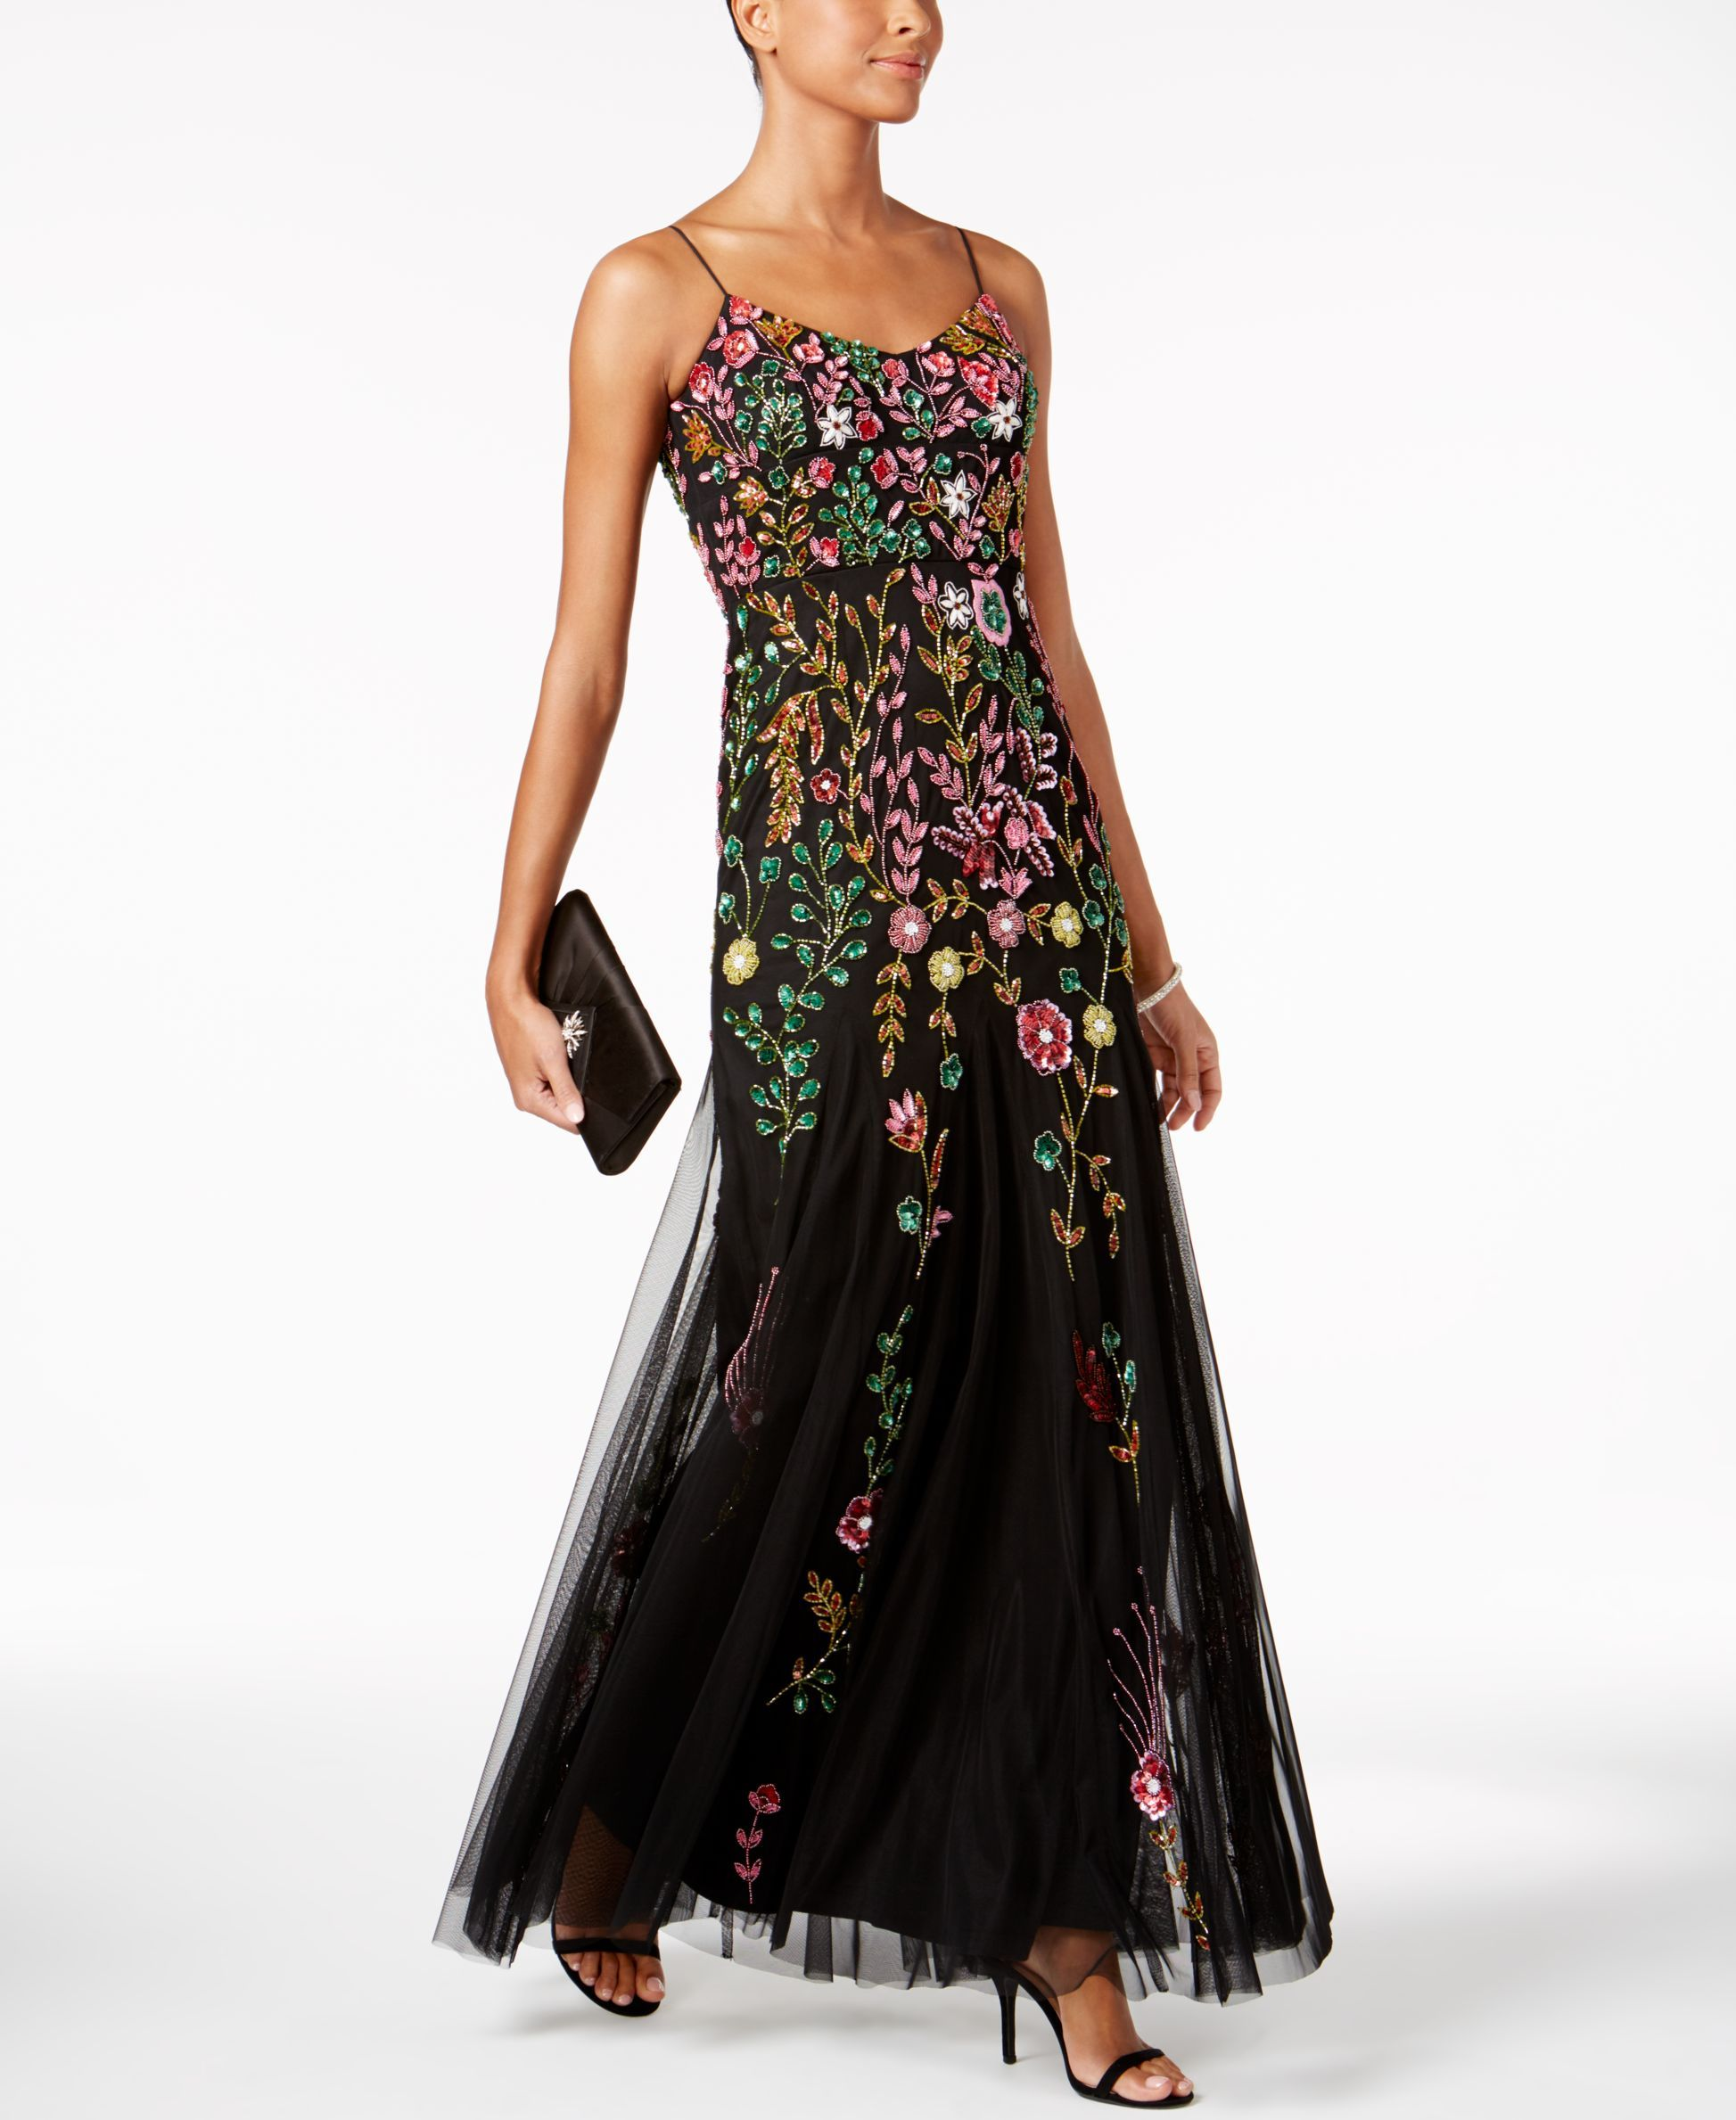 Macys womens dresses wedding  Adrianna Papell Beaded Gown  Products  Pinterest  Adrianna papell